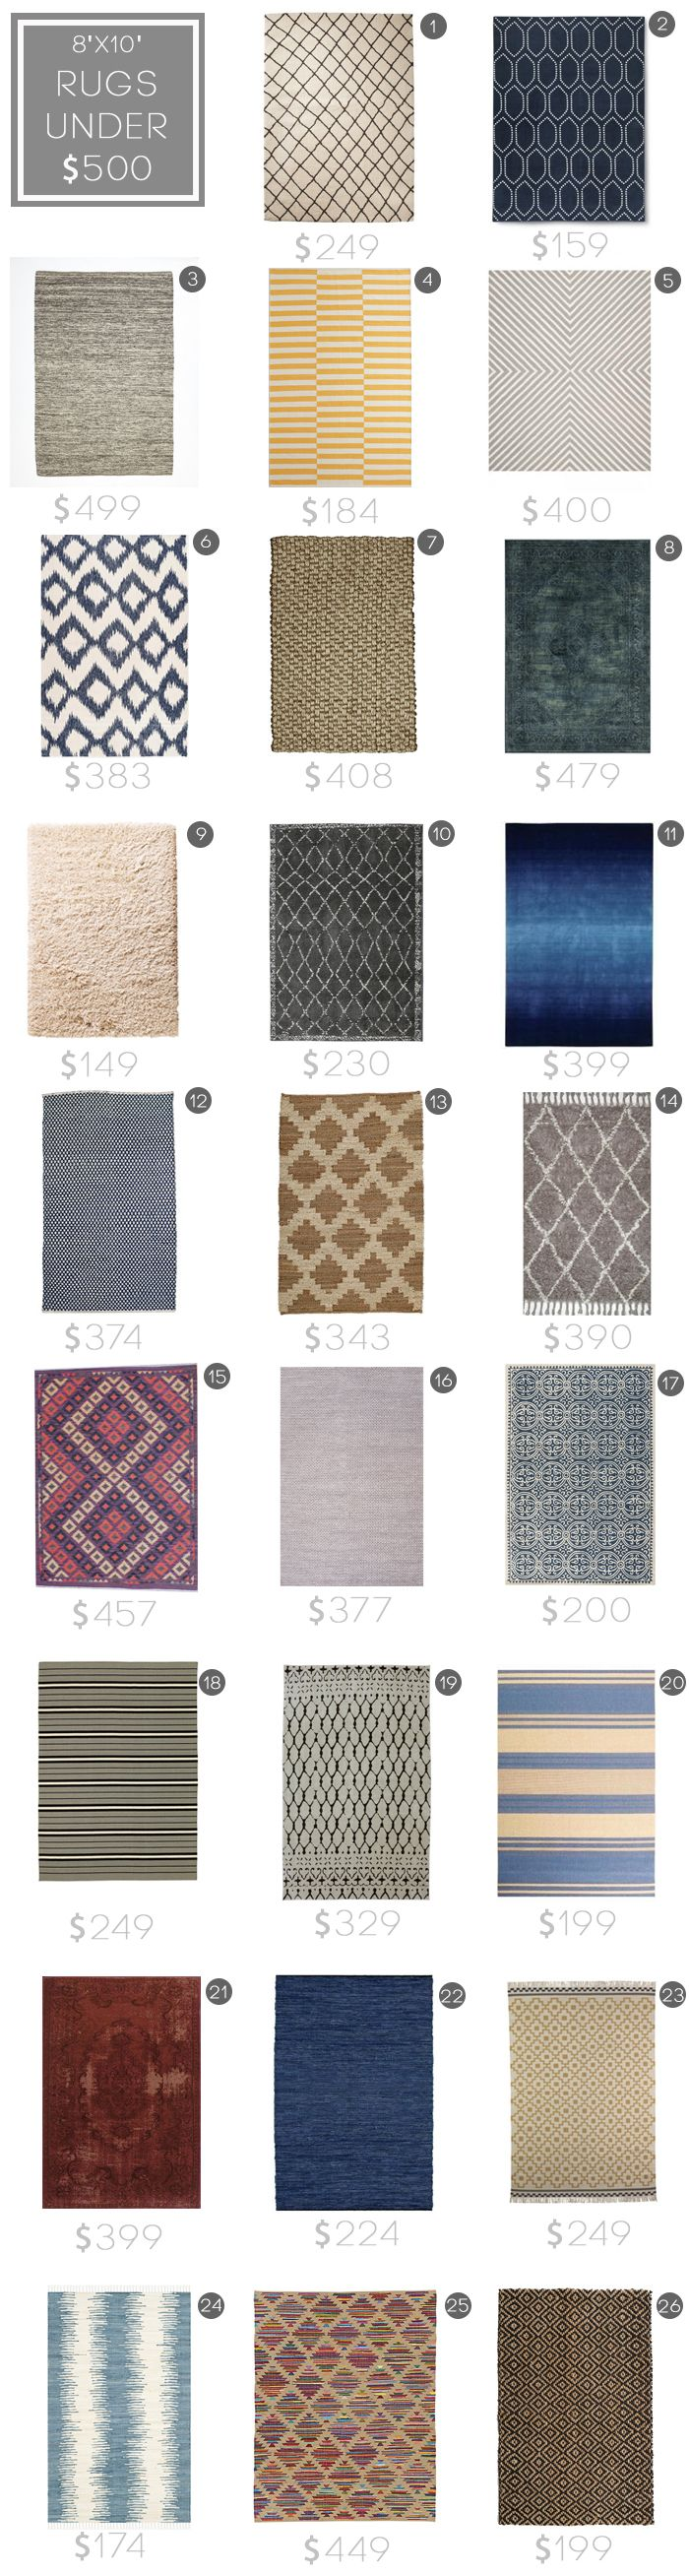 Best-Rugs-under-500_budget-rug_modern_midcentury_affordable_roundup_emily-henderson3